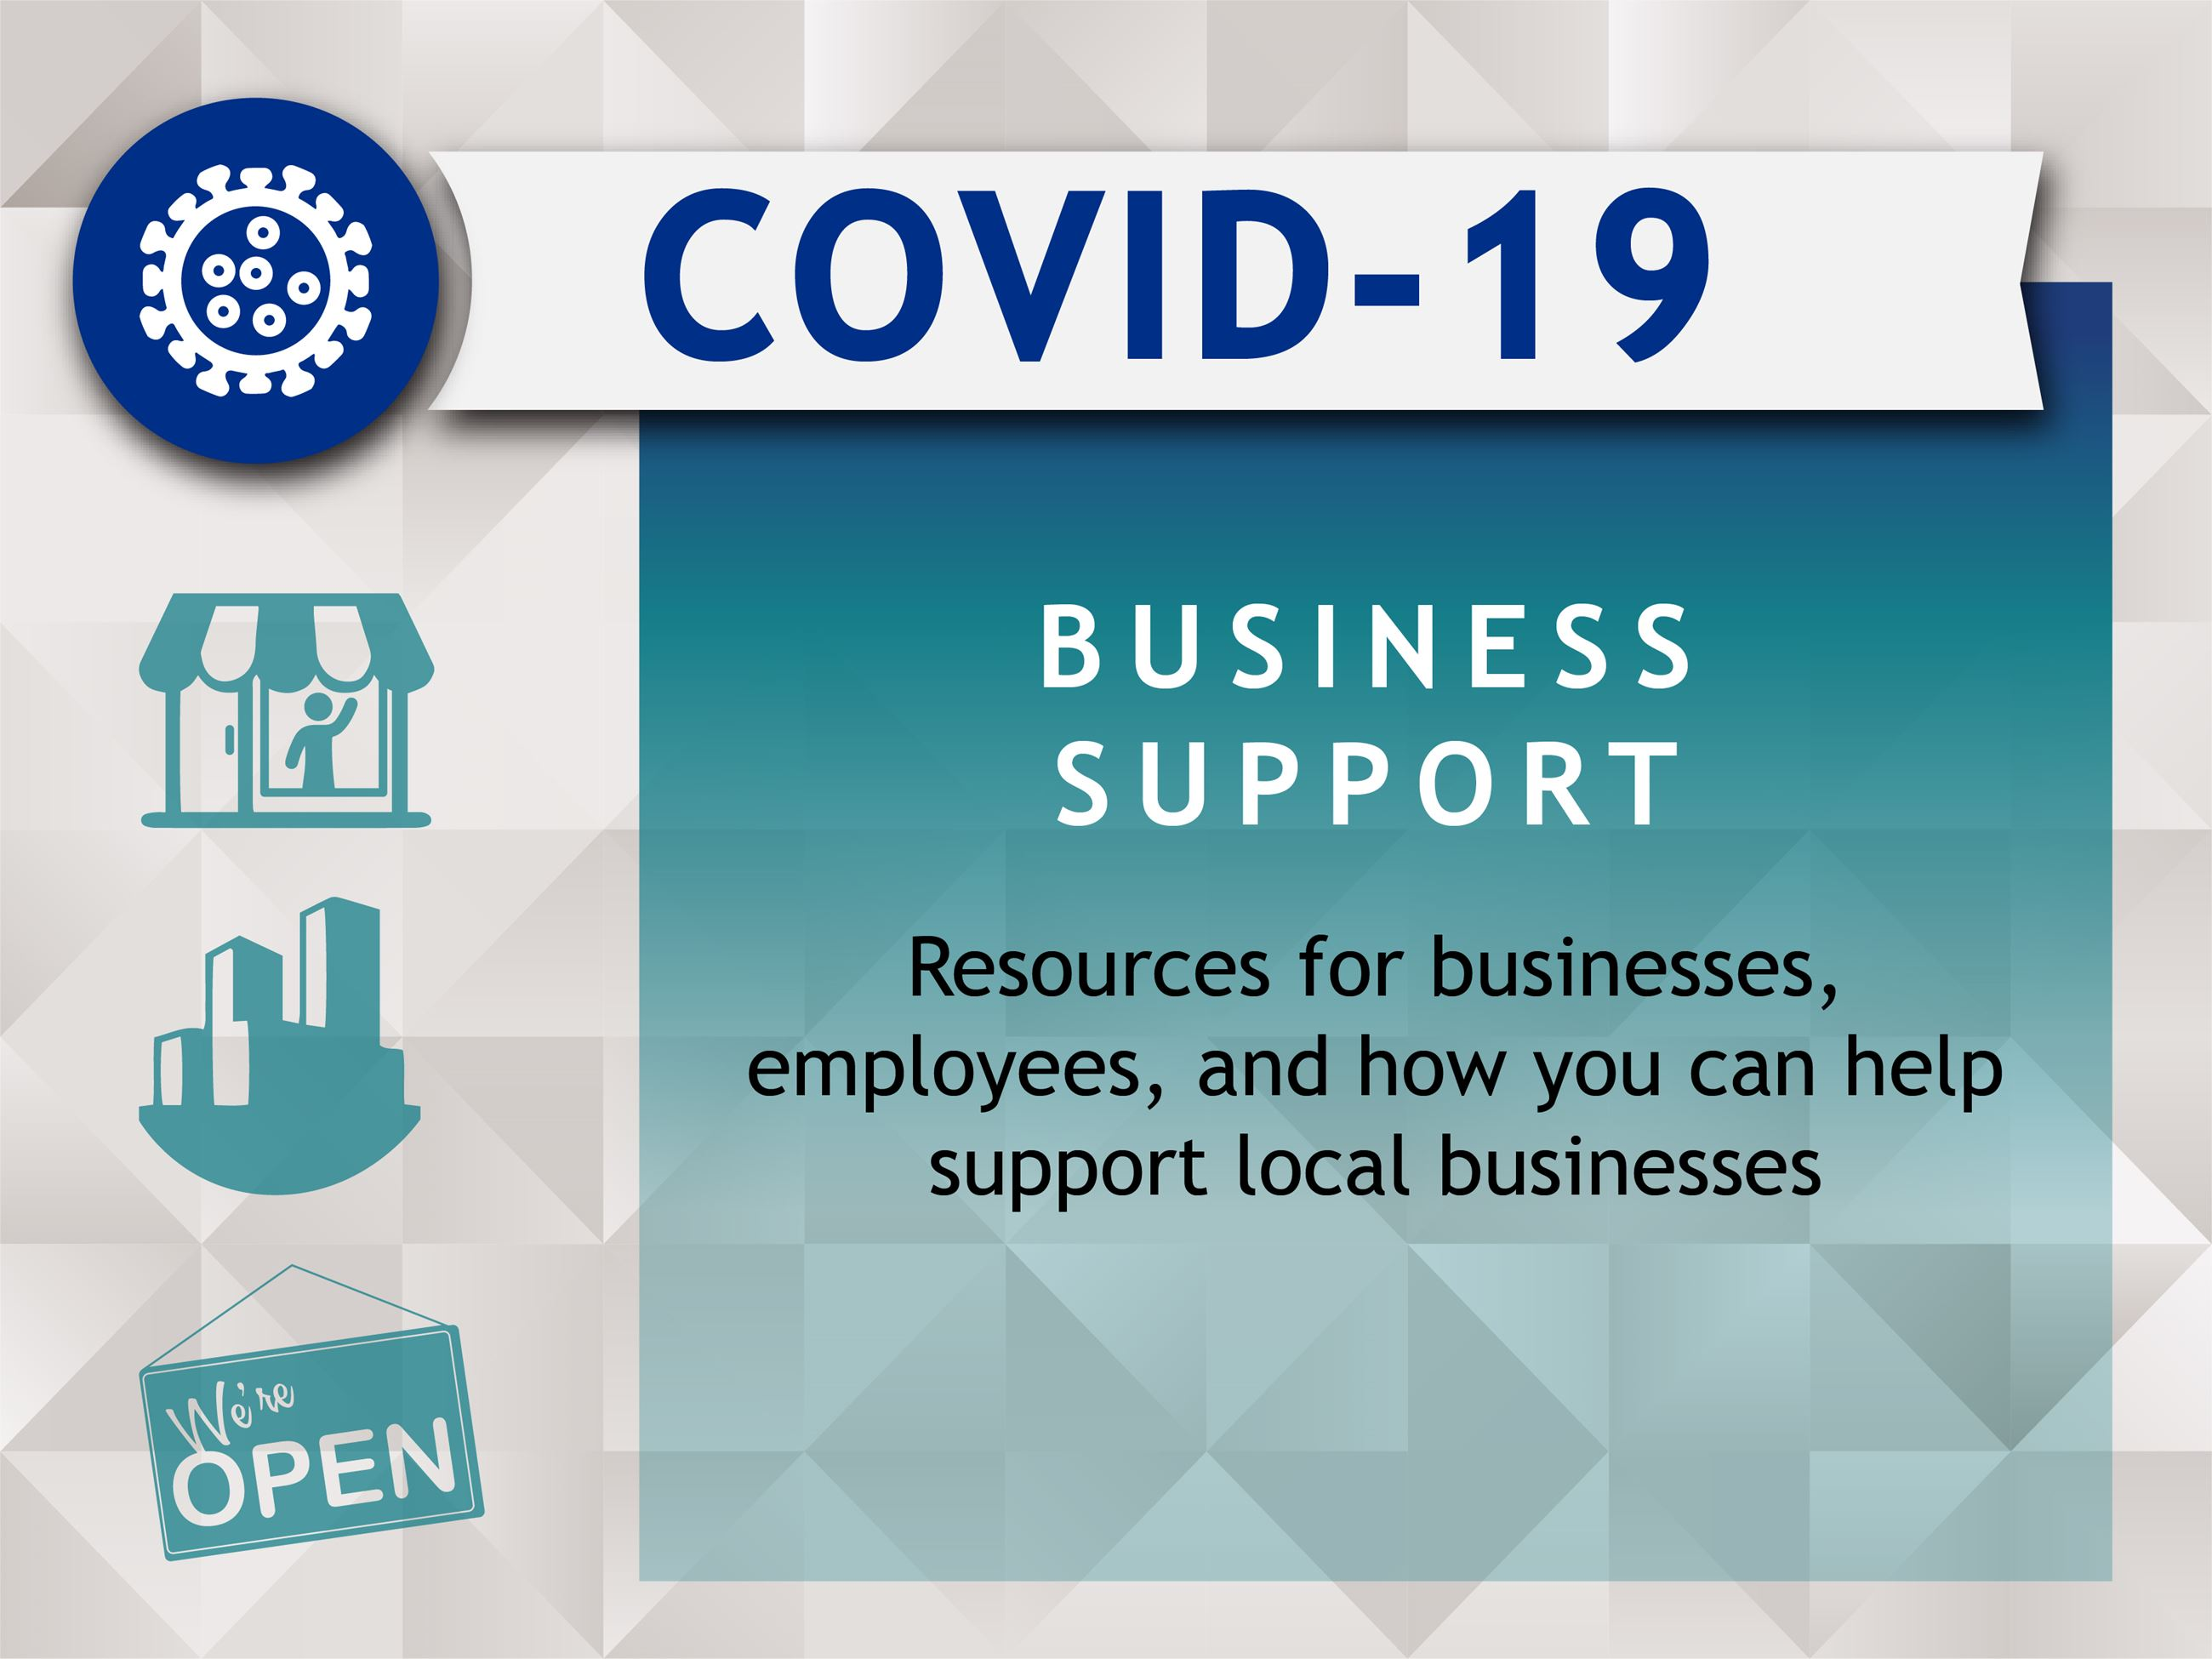 COVID-19 web images_BusinessSupport